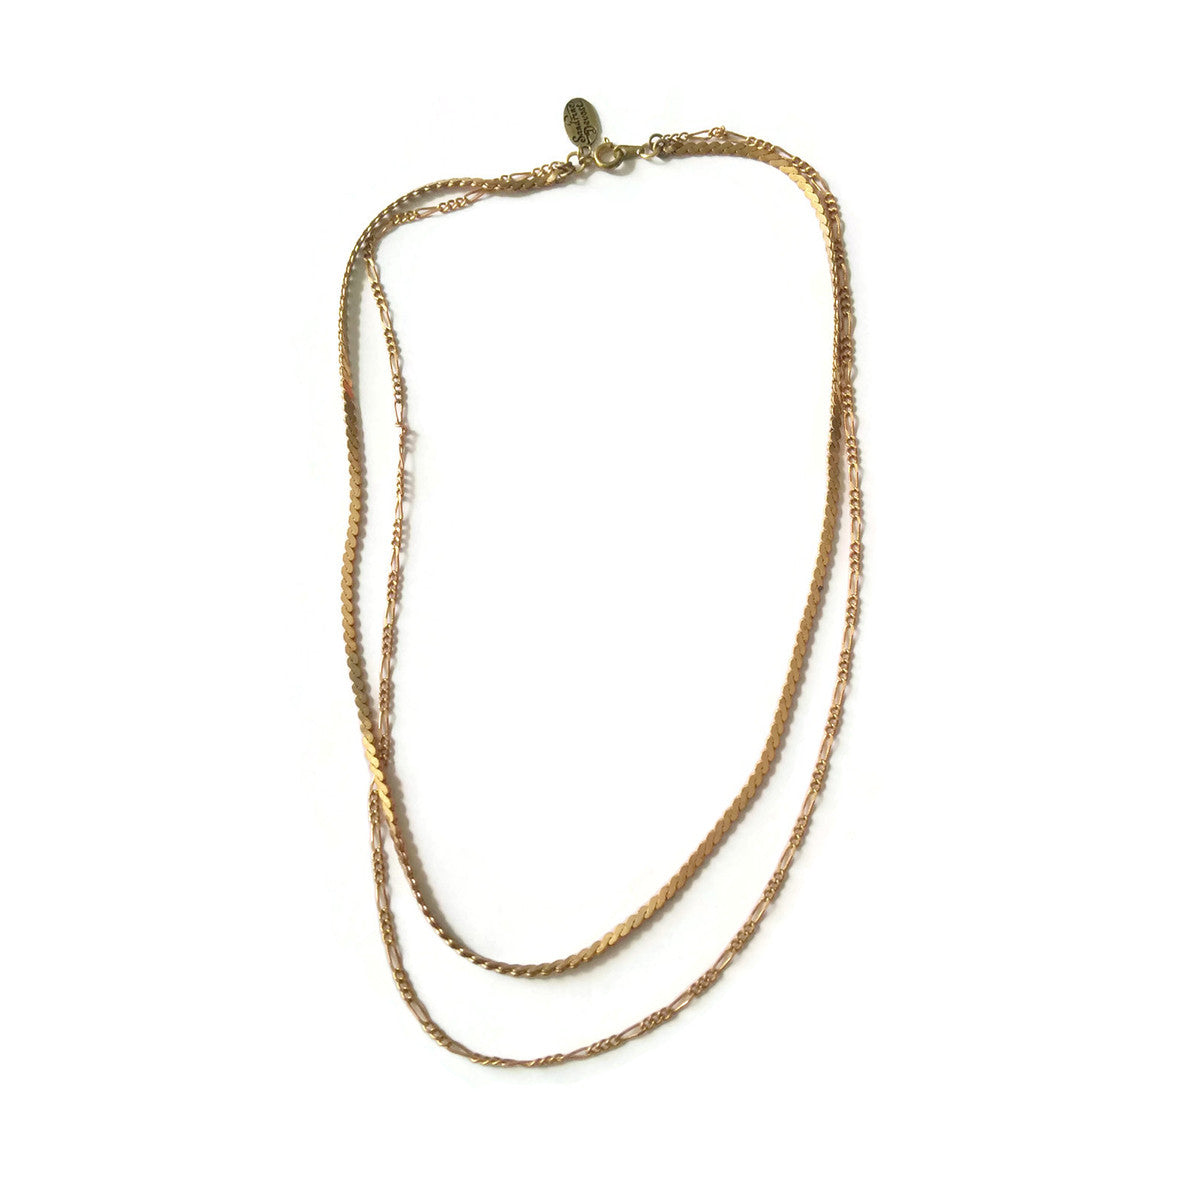 Multi layers necklace with vintage brass chains